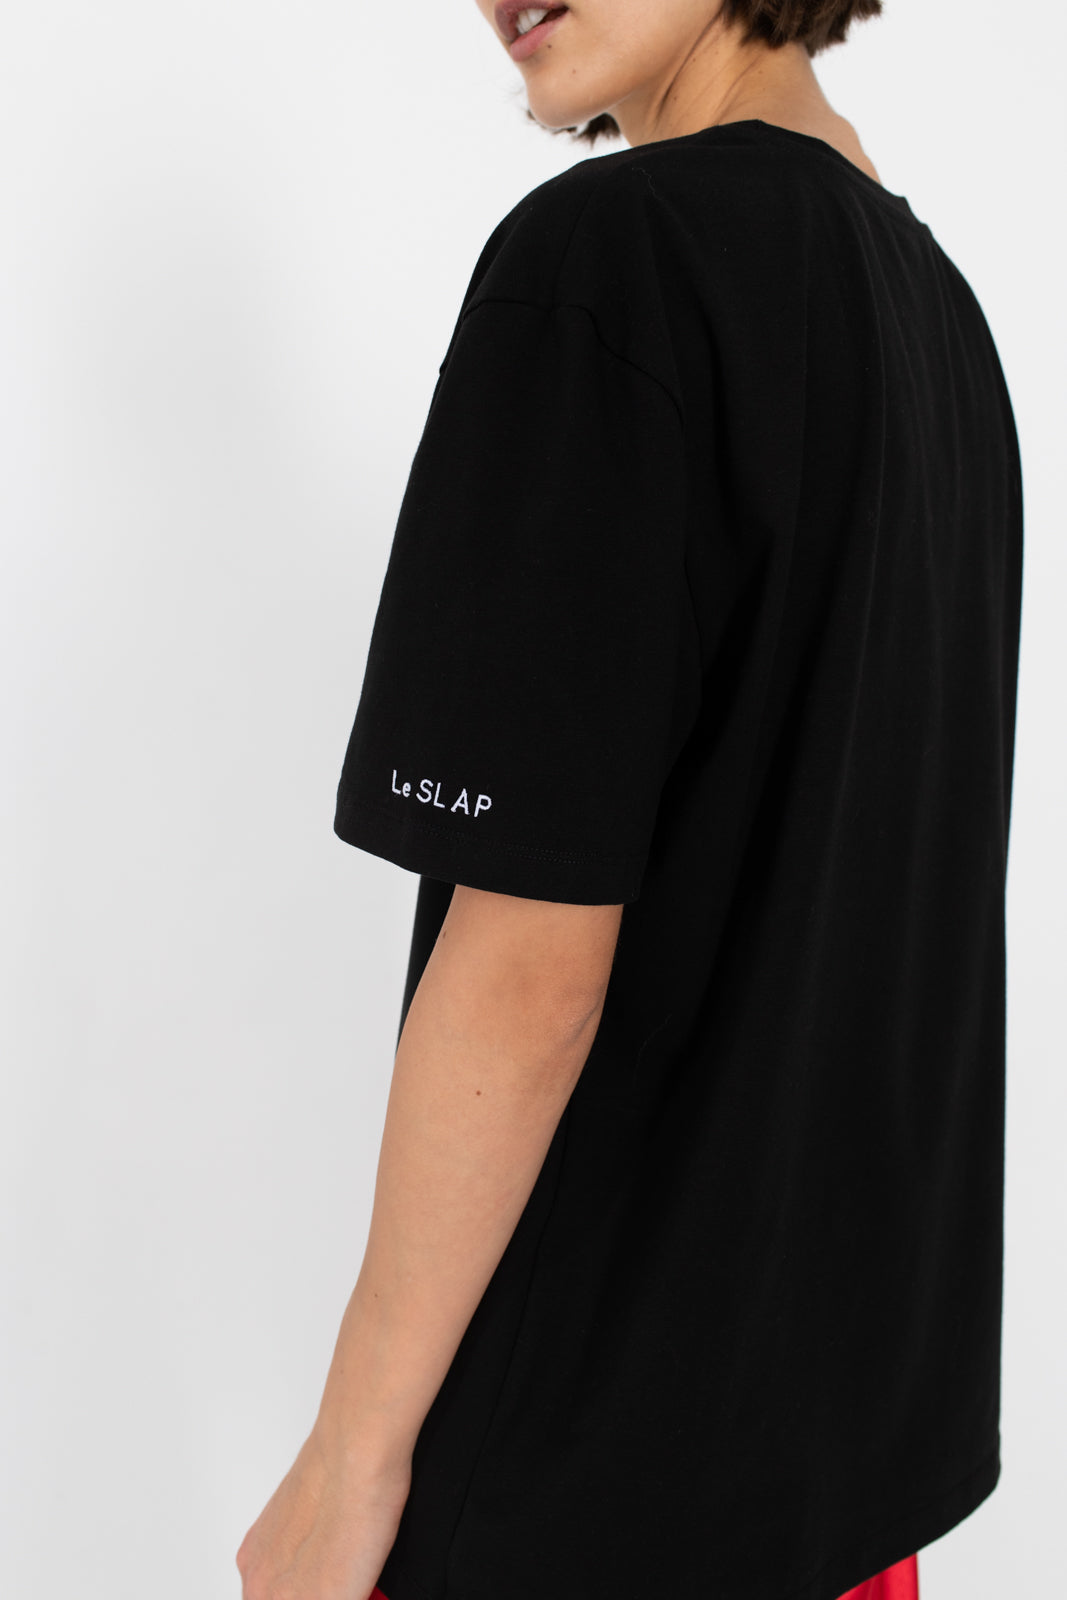 le-slap-logo-tshirt-oversize-black-photoshoot.jpg